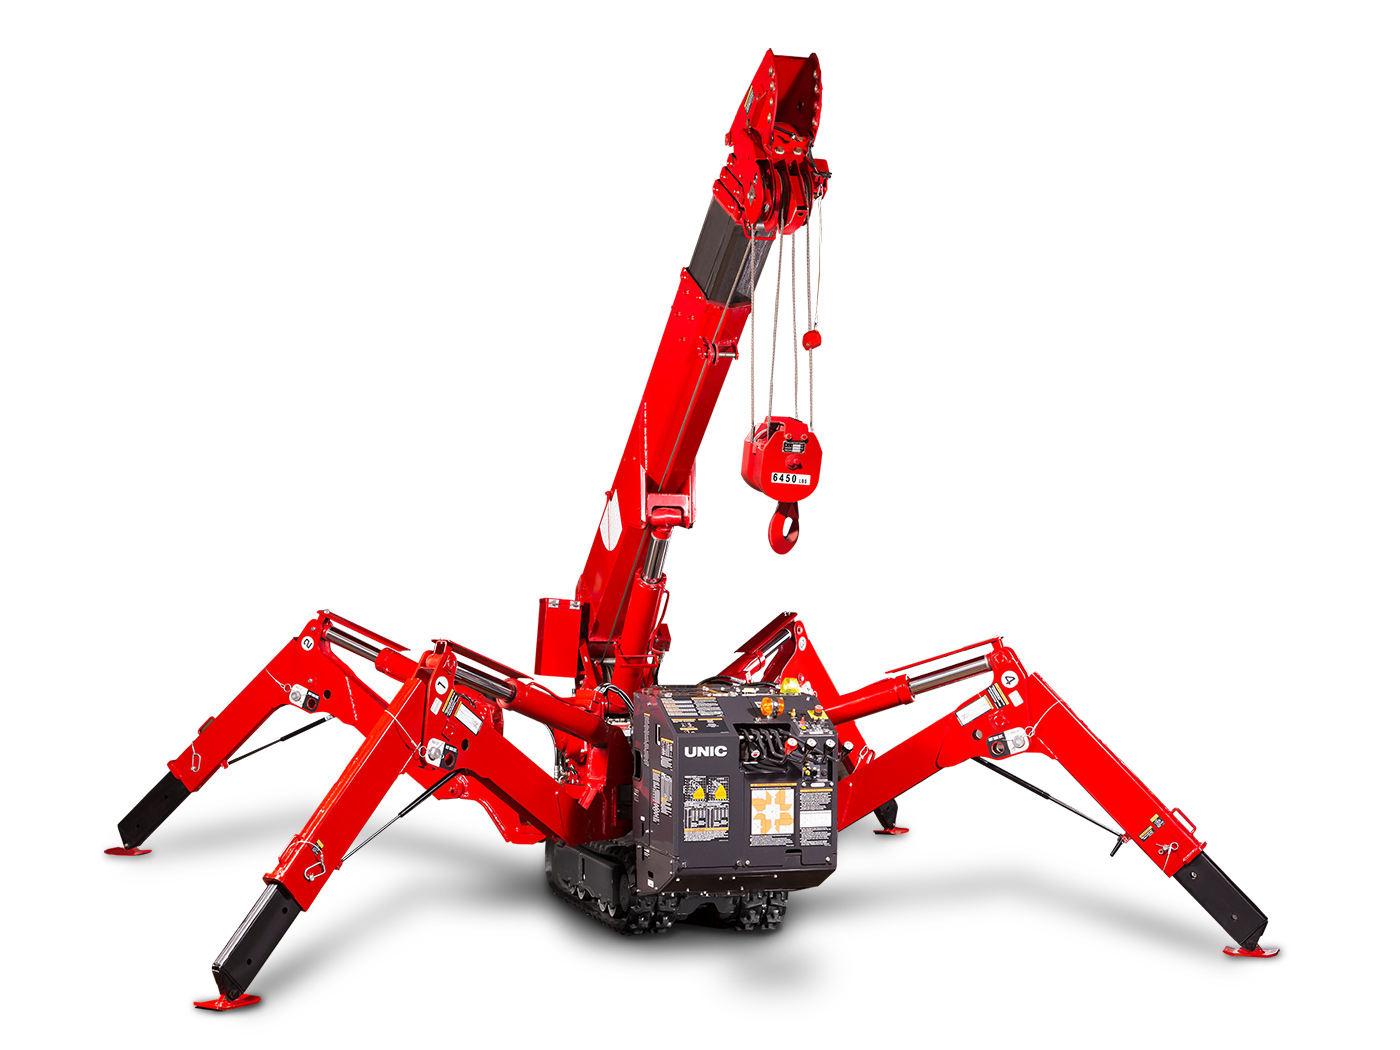 Spydercrane URW295 - Controls